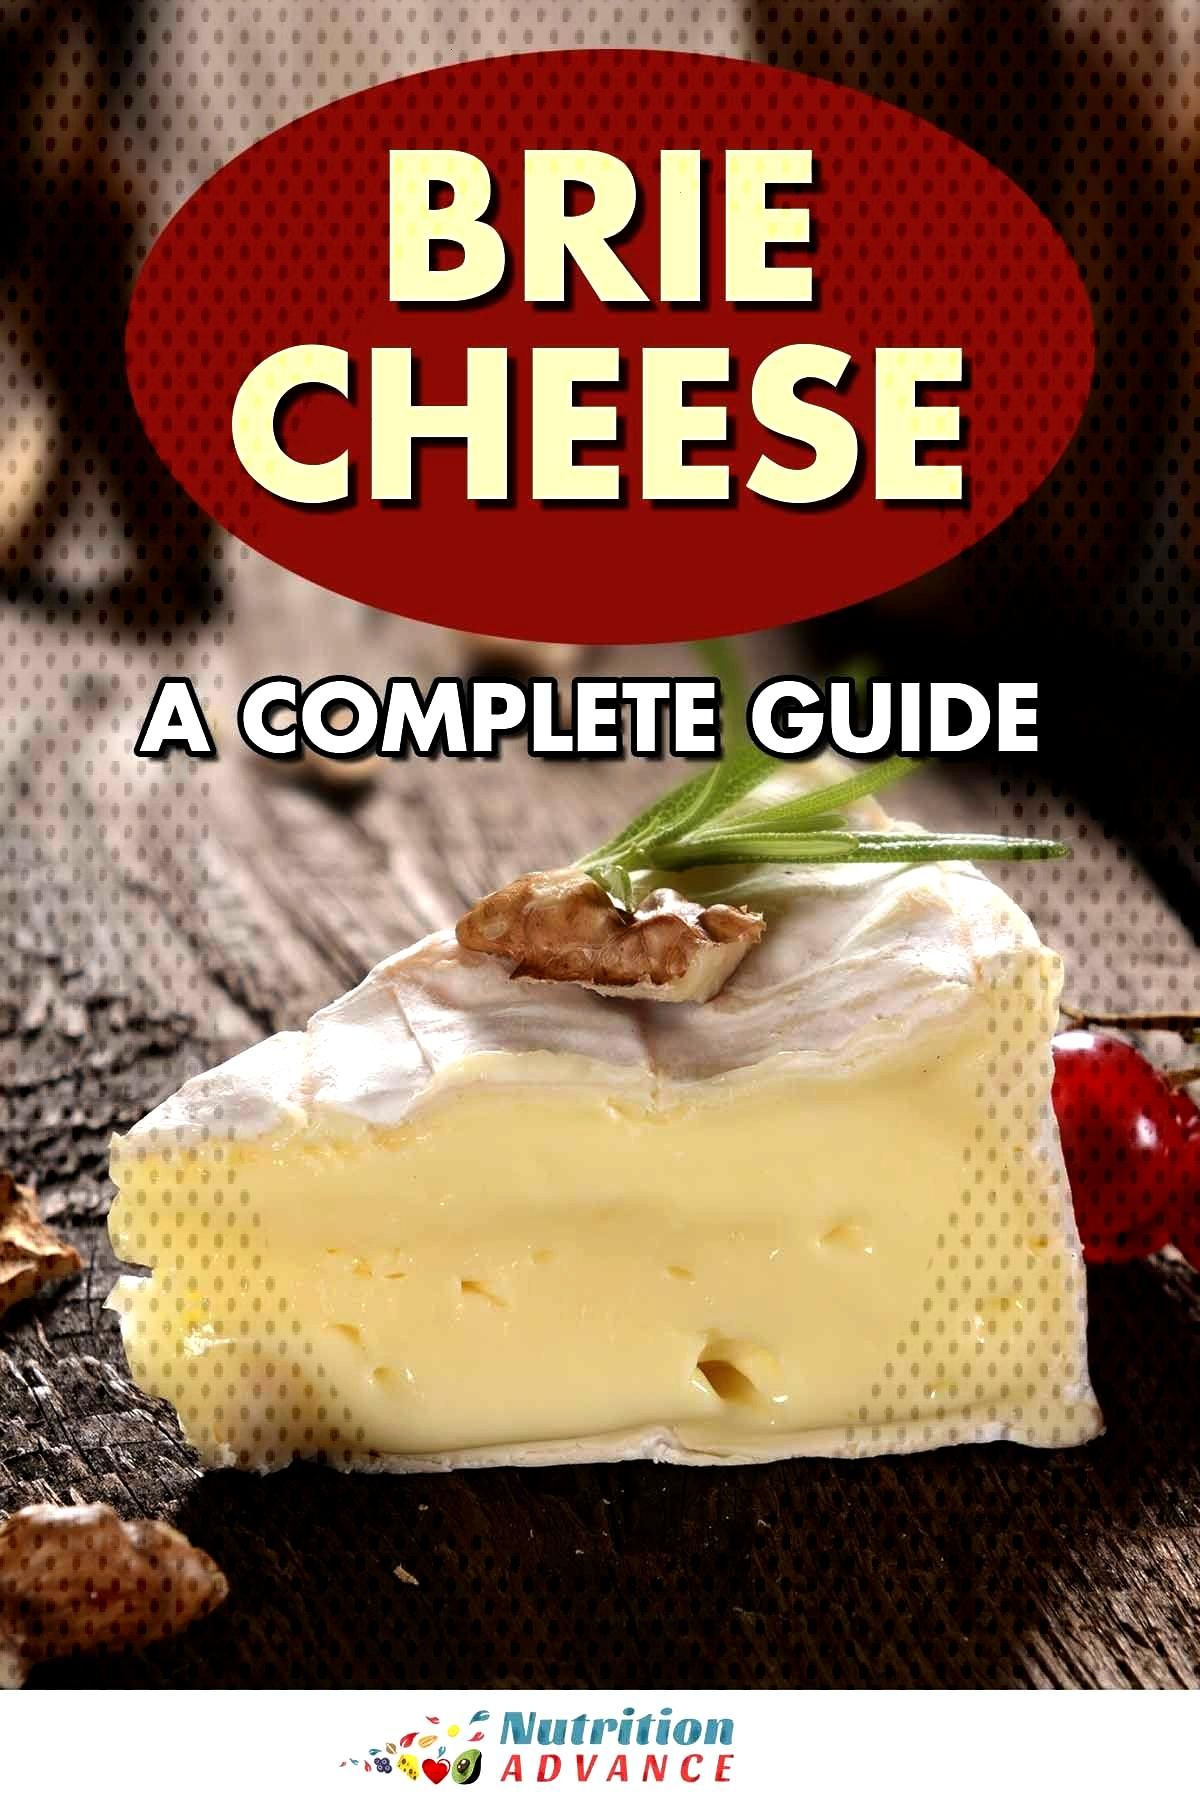 Brie is a soft and creamy French cheese that enjoys popularity around the world. What does it offer